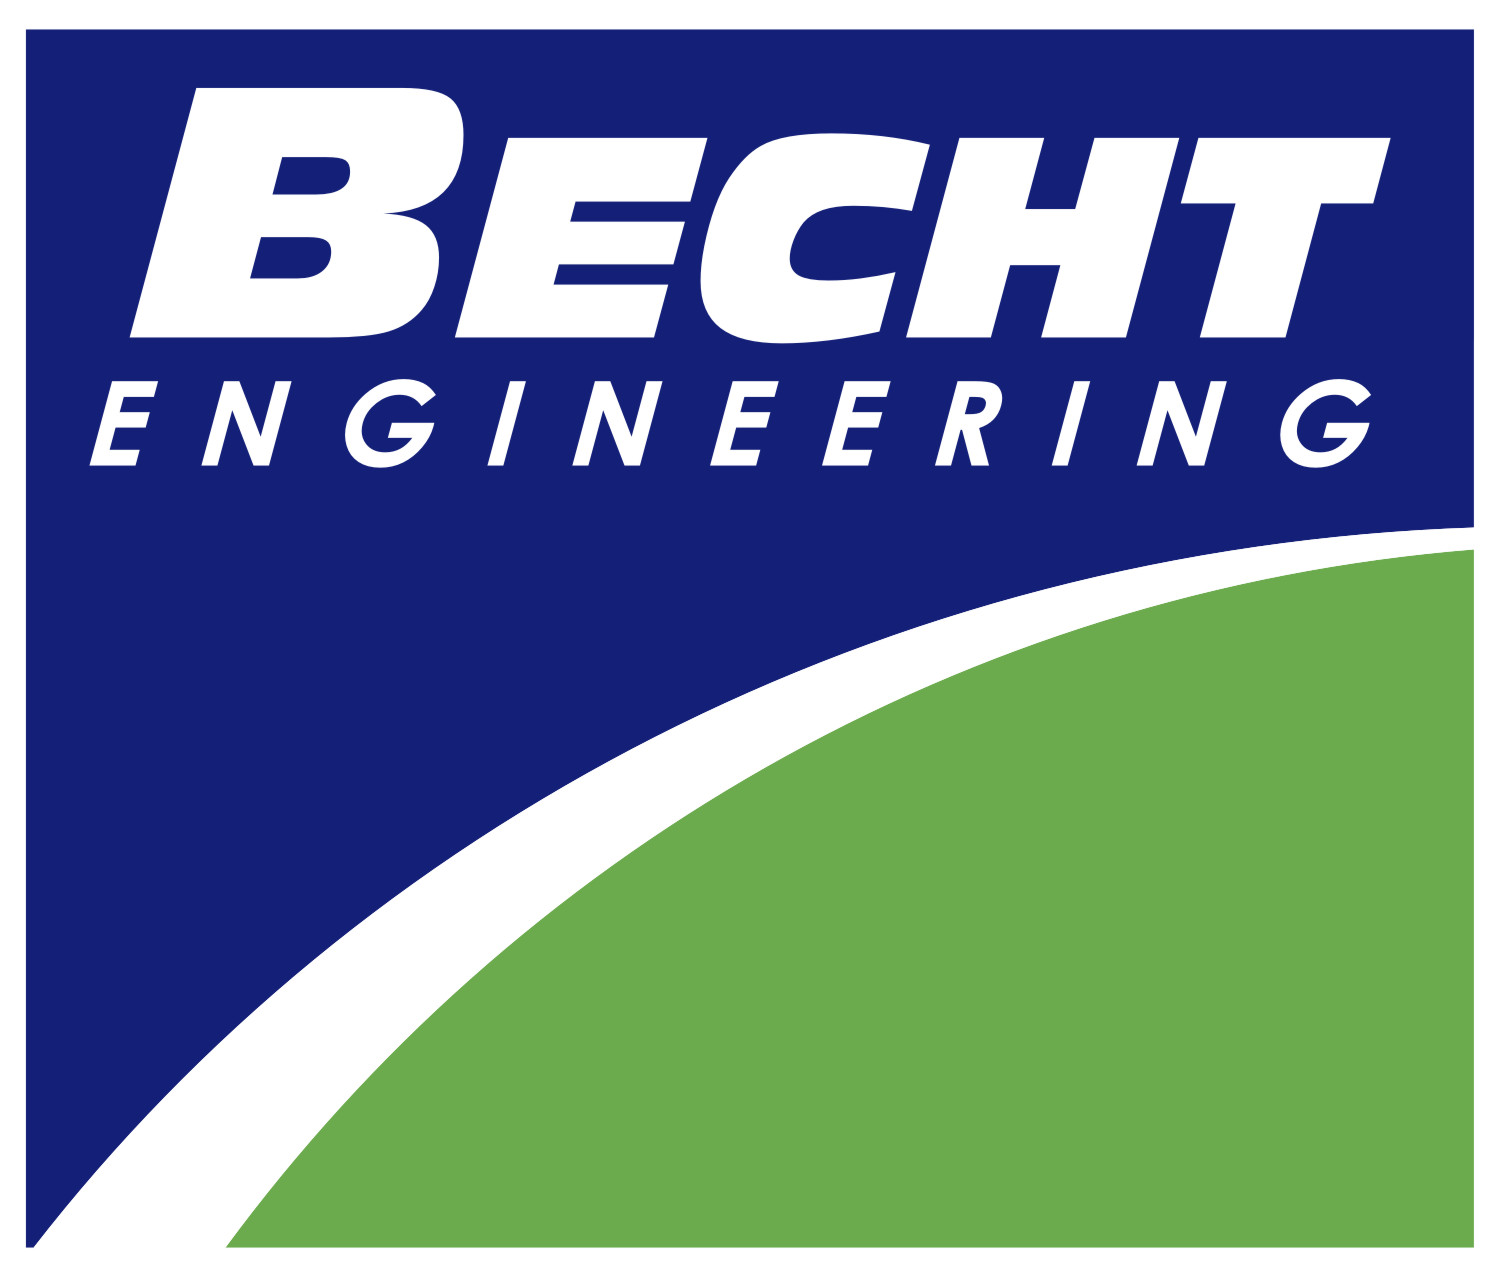 Becht Engineering Welcomes Gene Roundtree, Vince Carucci and Lori Carucci to the Family